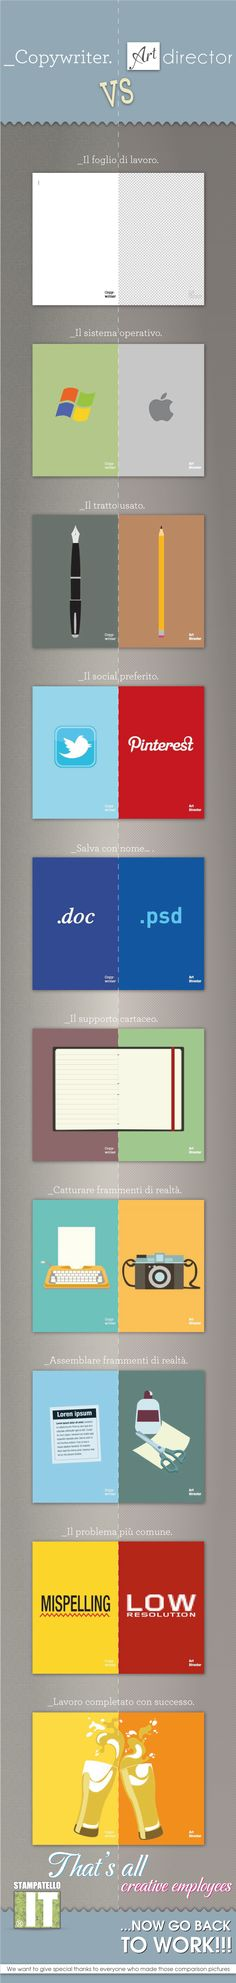 copywriter vs art director